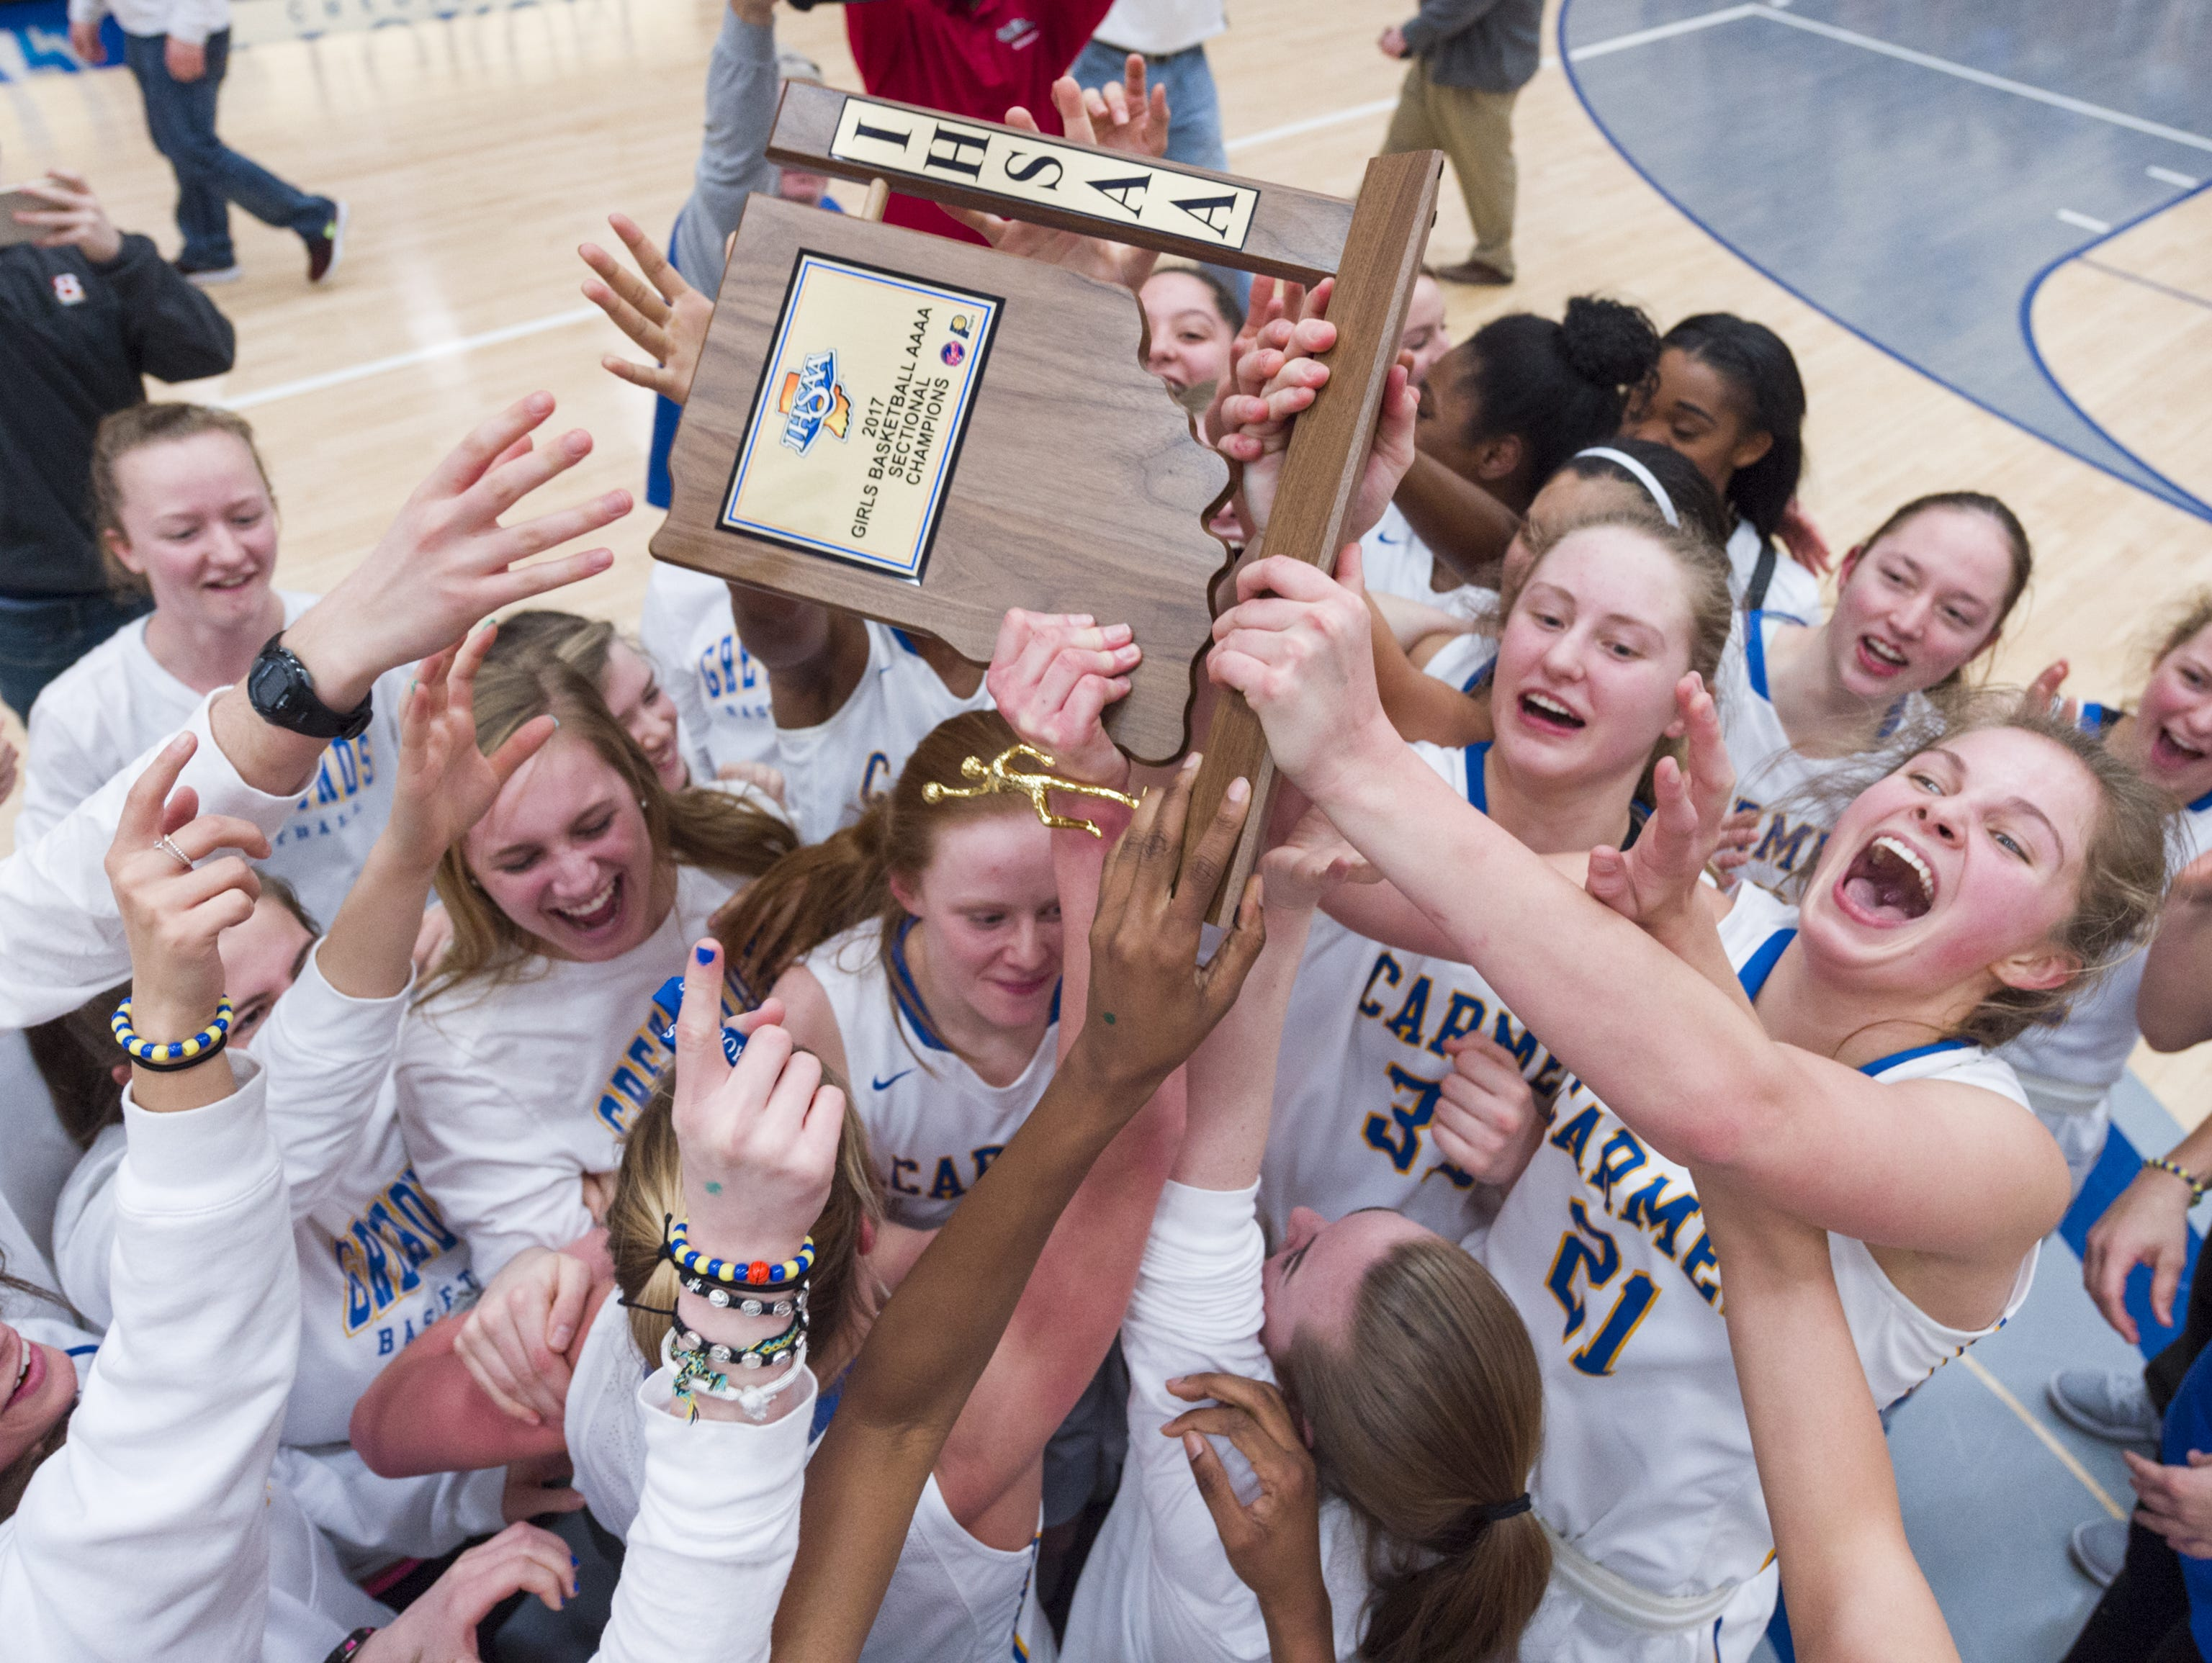 Carmel High School players celebrate with their trophy after winning the 2017 IHSAA Girl's Basketball Sectional Tournament championship game at Hamilton Southeastern High School Saturday, Feb. 4, 2017. Carmel won 62-57.